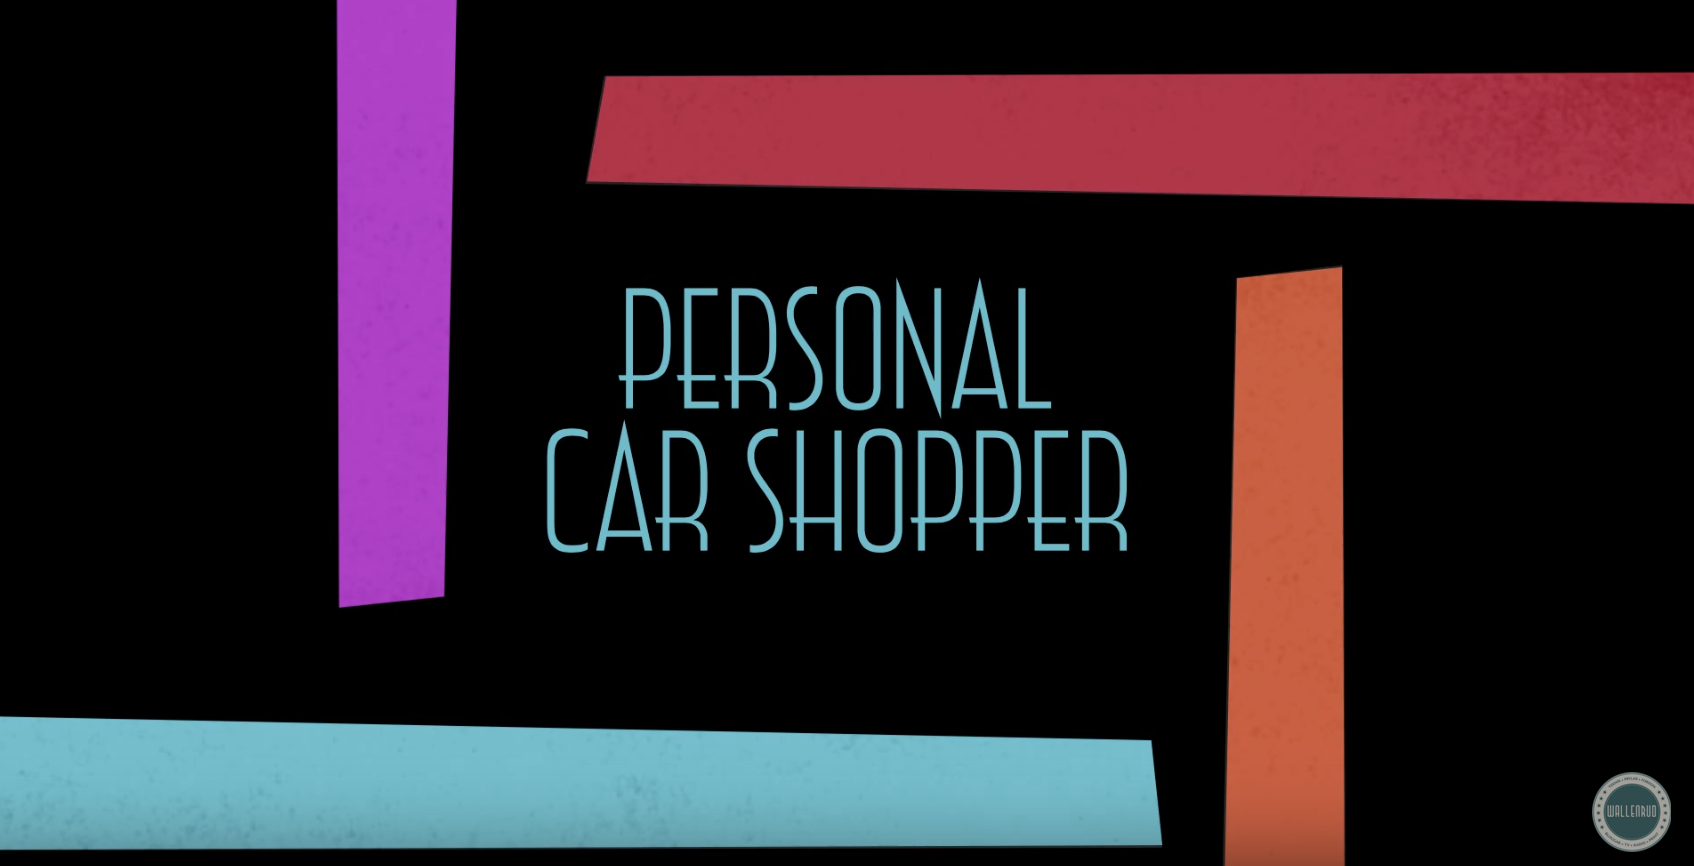 PERSONAL CAR SHOPPER – THE MOVIE